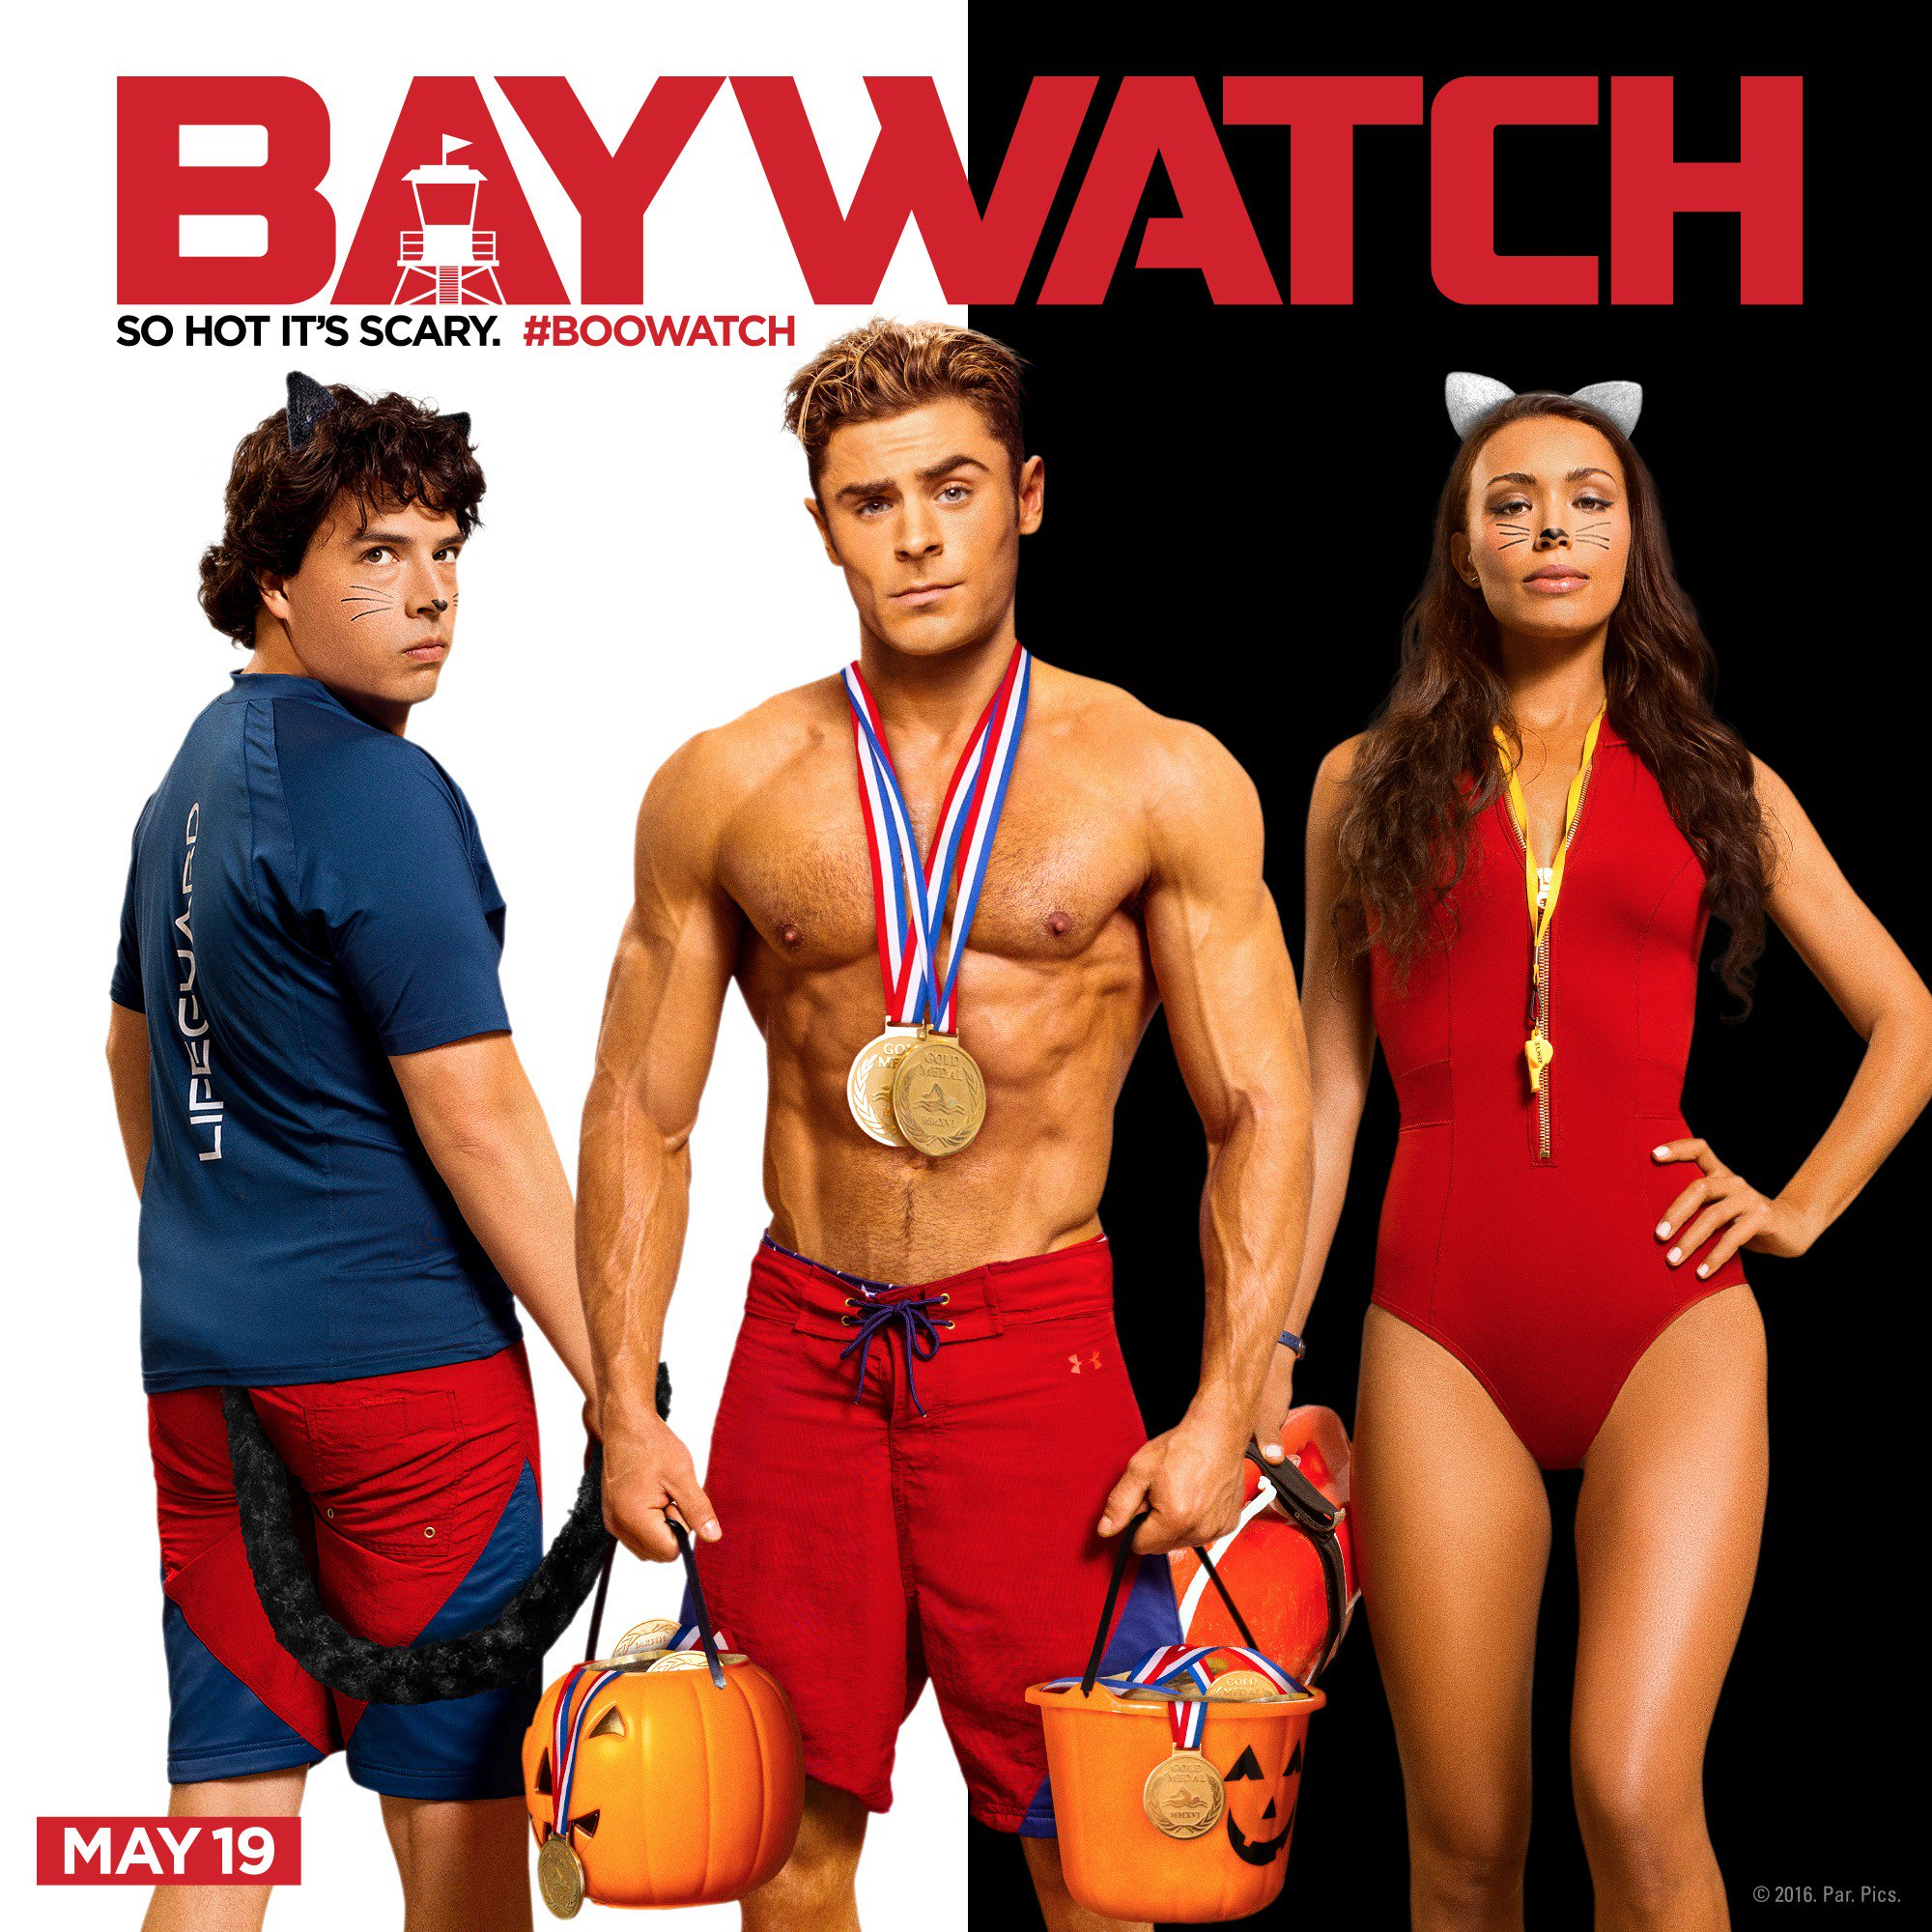 Baywatch Trailer Teaser Revealed 5